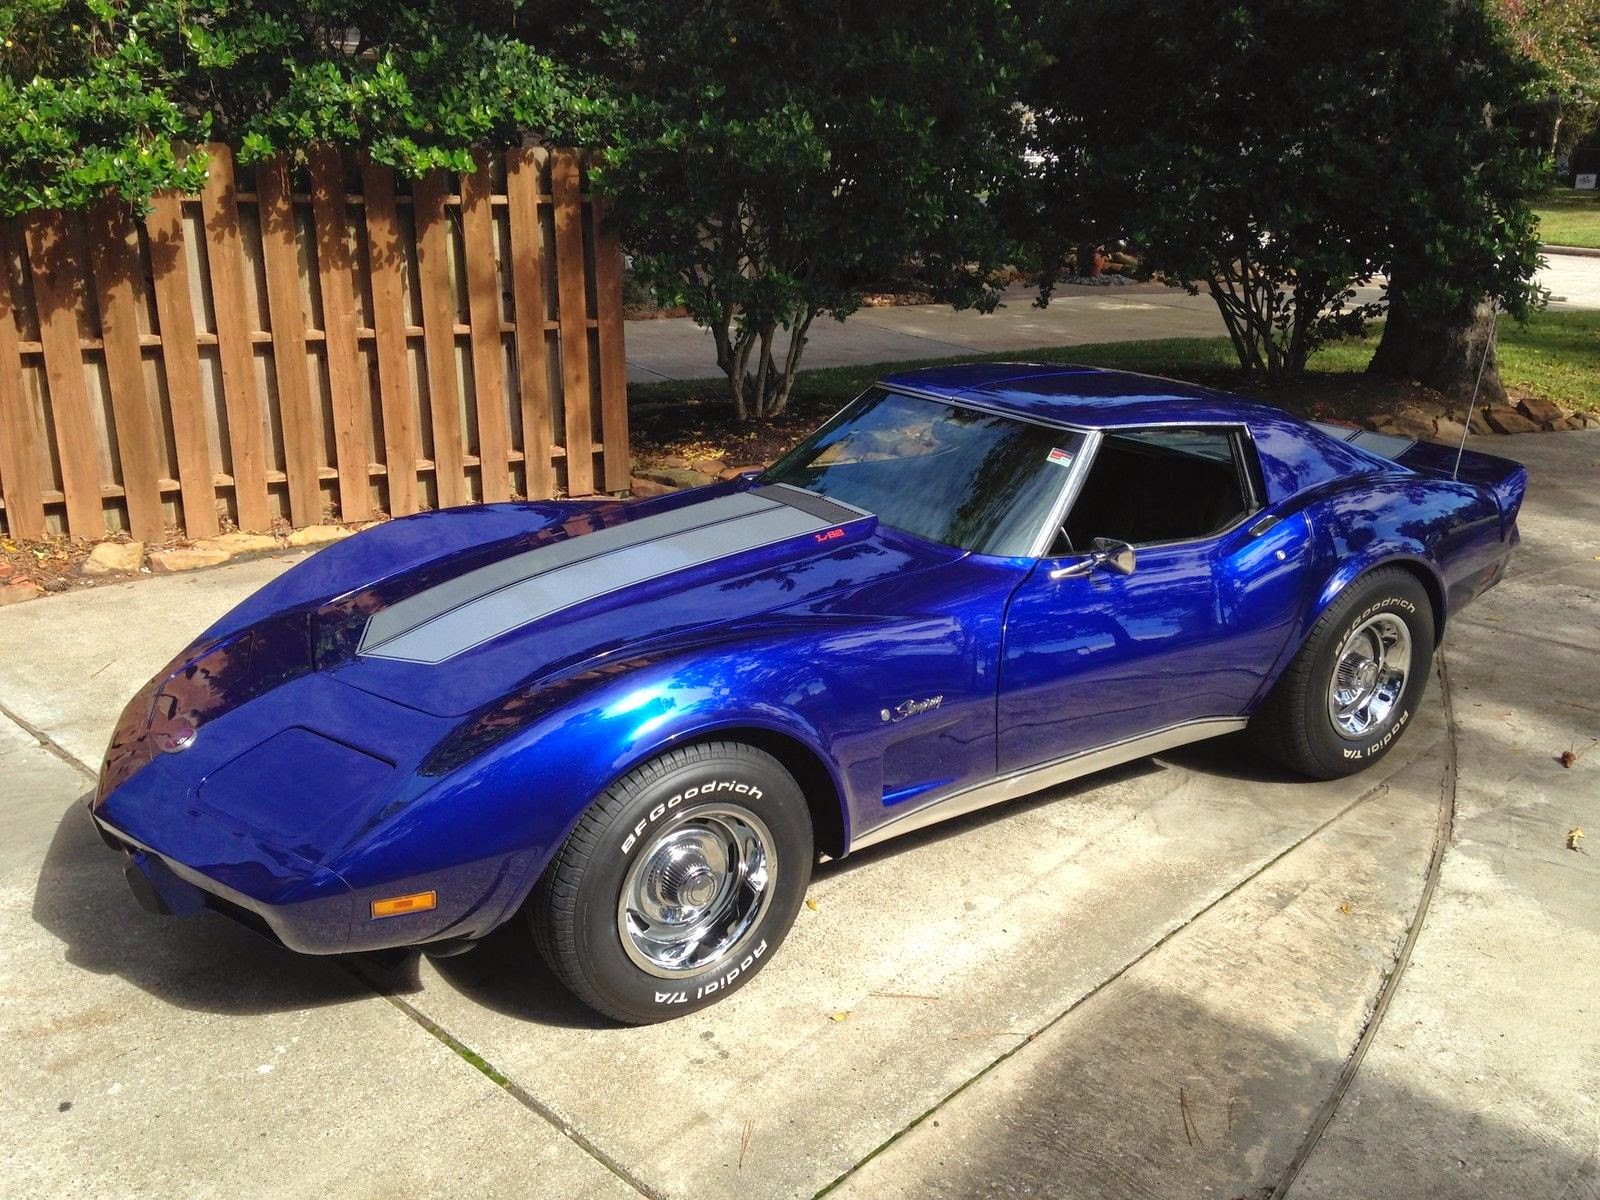 1975 Chevrolet Corvette Stingray 4 Speed Manual   For Sale American     1975 Chevrolet Corvette Stingray  rare 4 Speed transmission manual Only  1047 manual transmission Stingrays produced in 1975  This car has always  been a Best